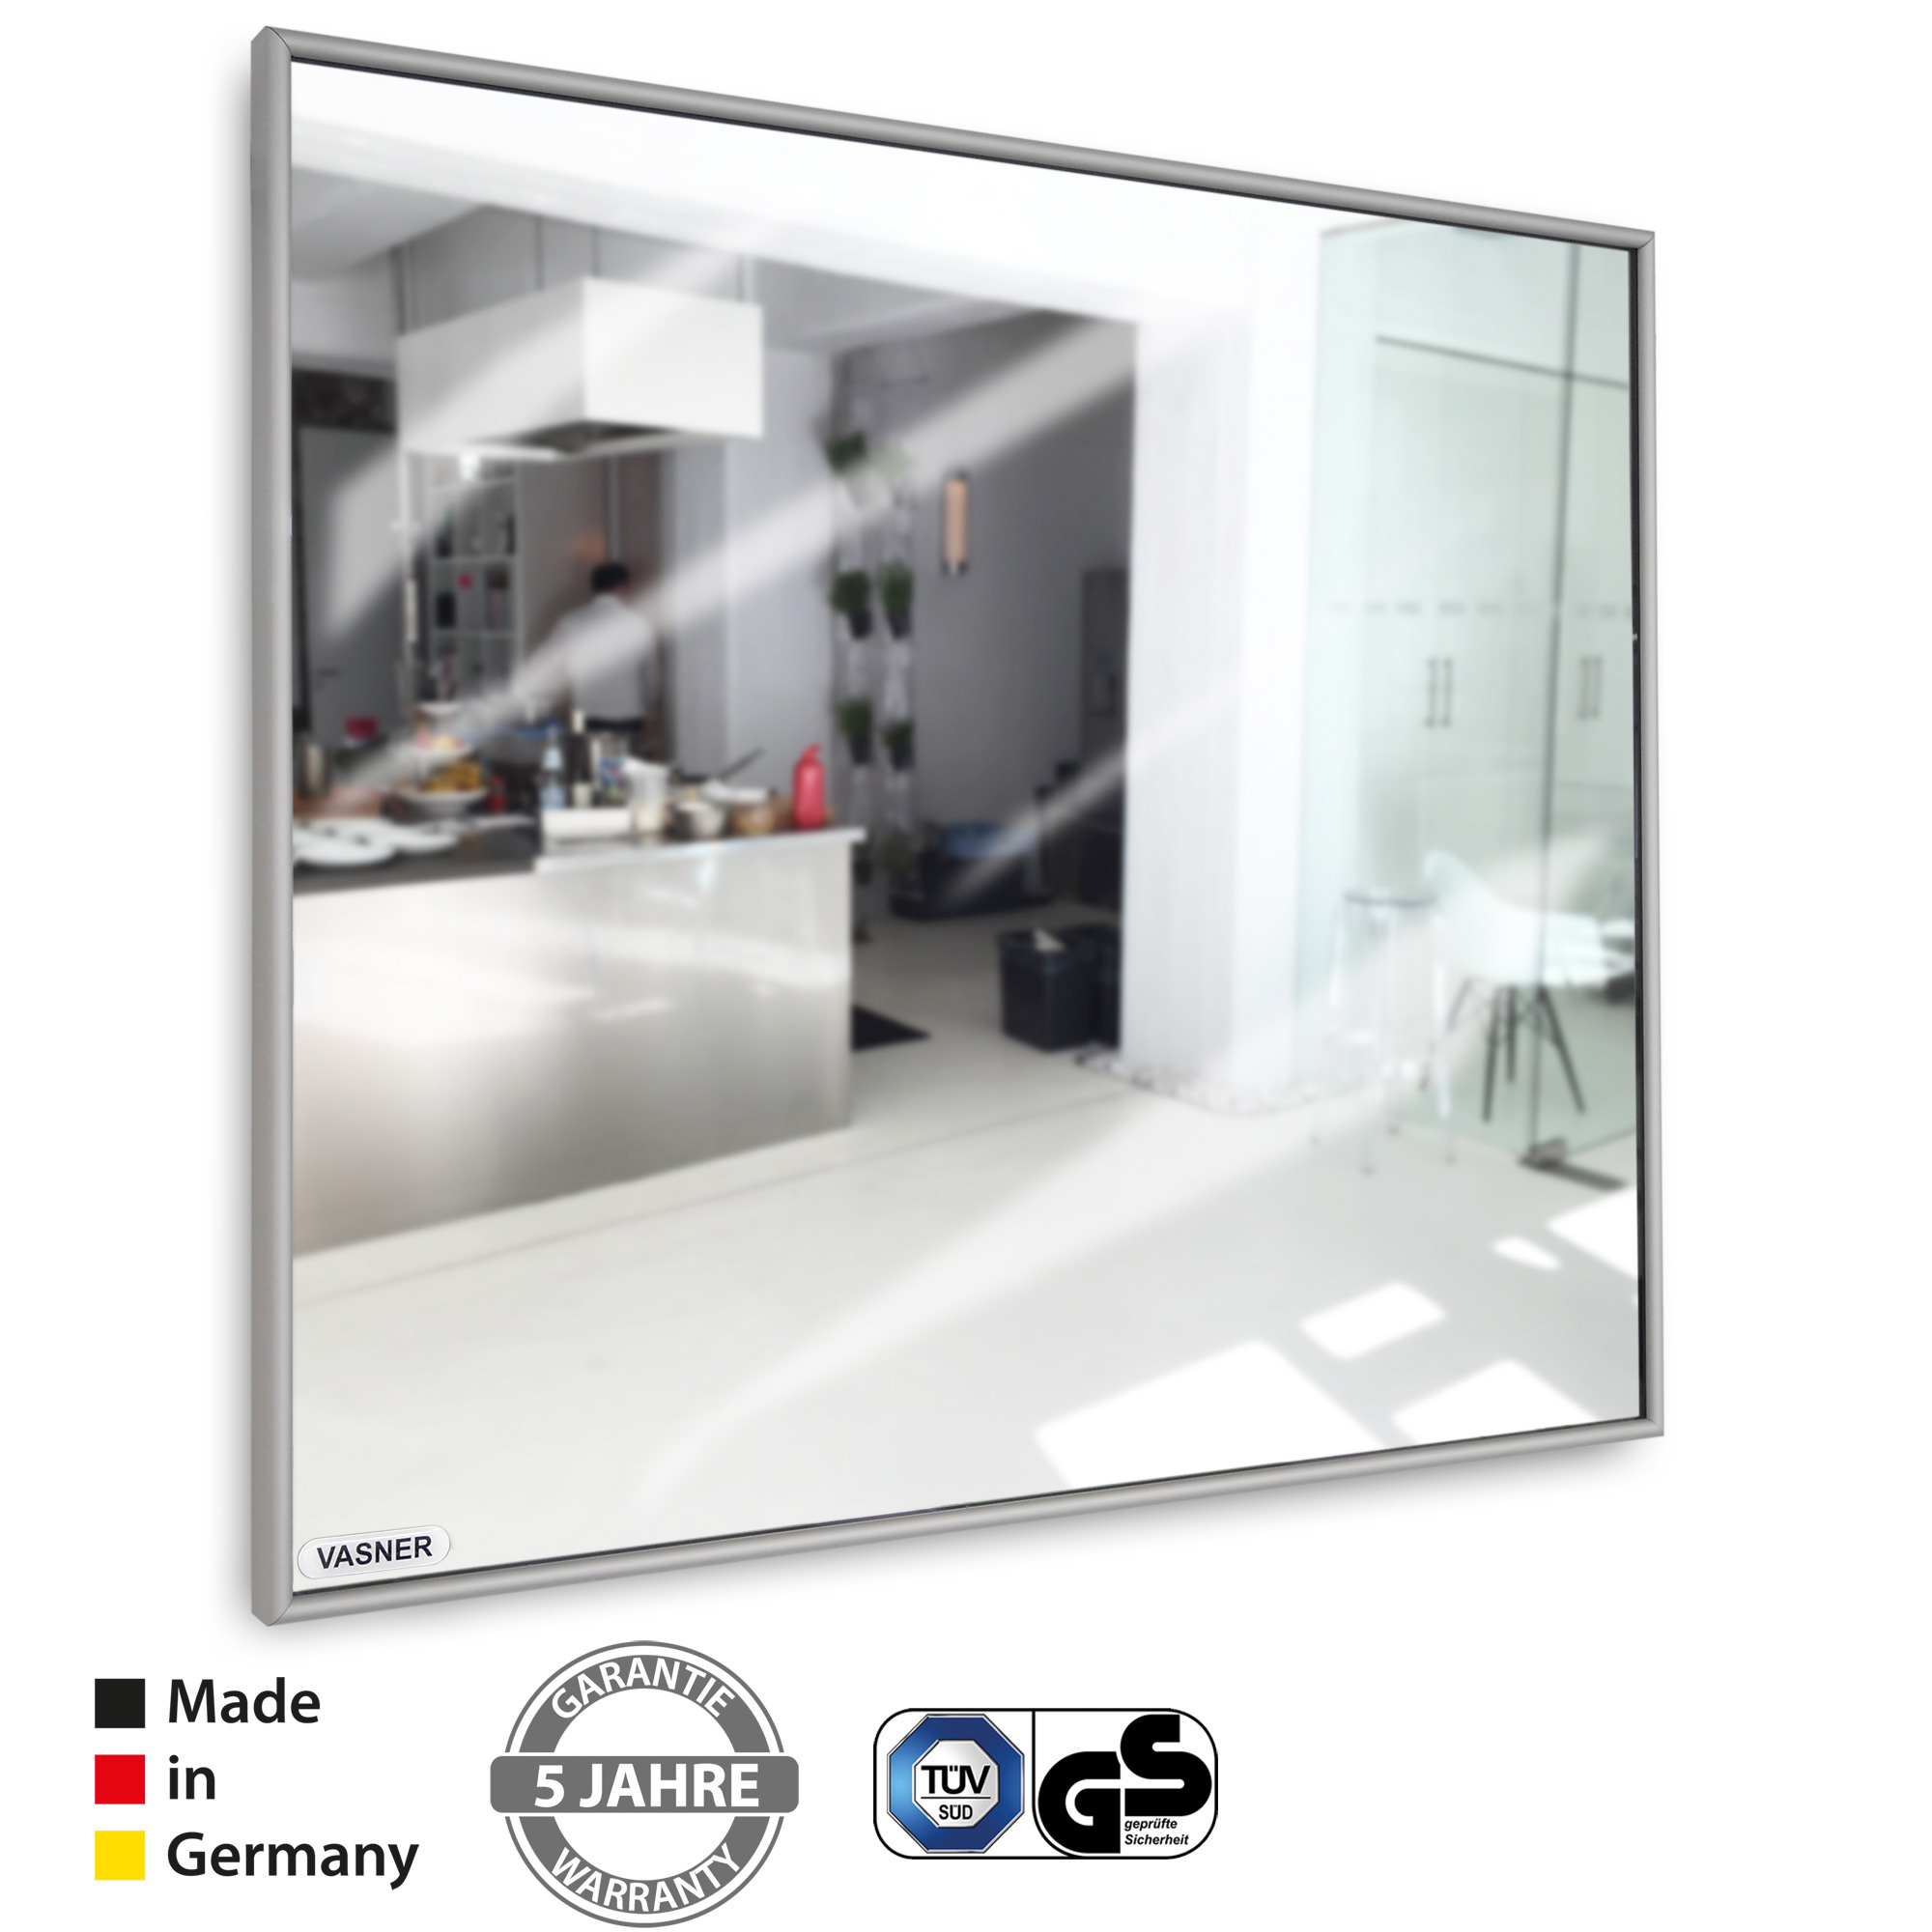 mirror-heater-panels-vasner-quality-TUEV-5-year-warranty-Made-in-Germany